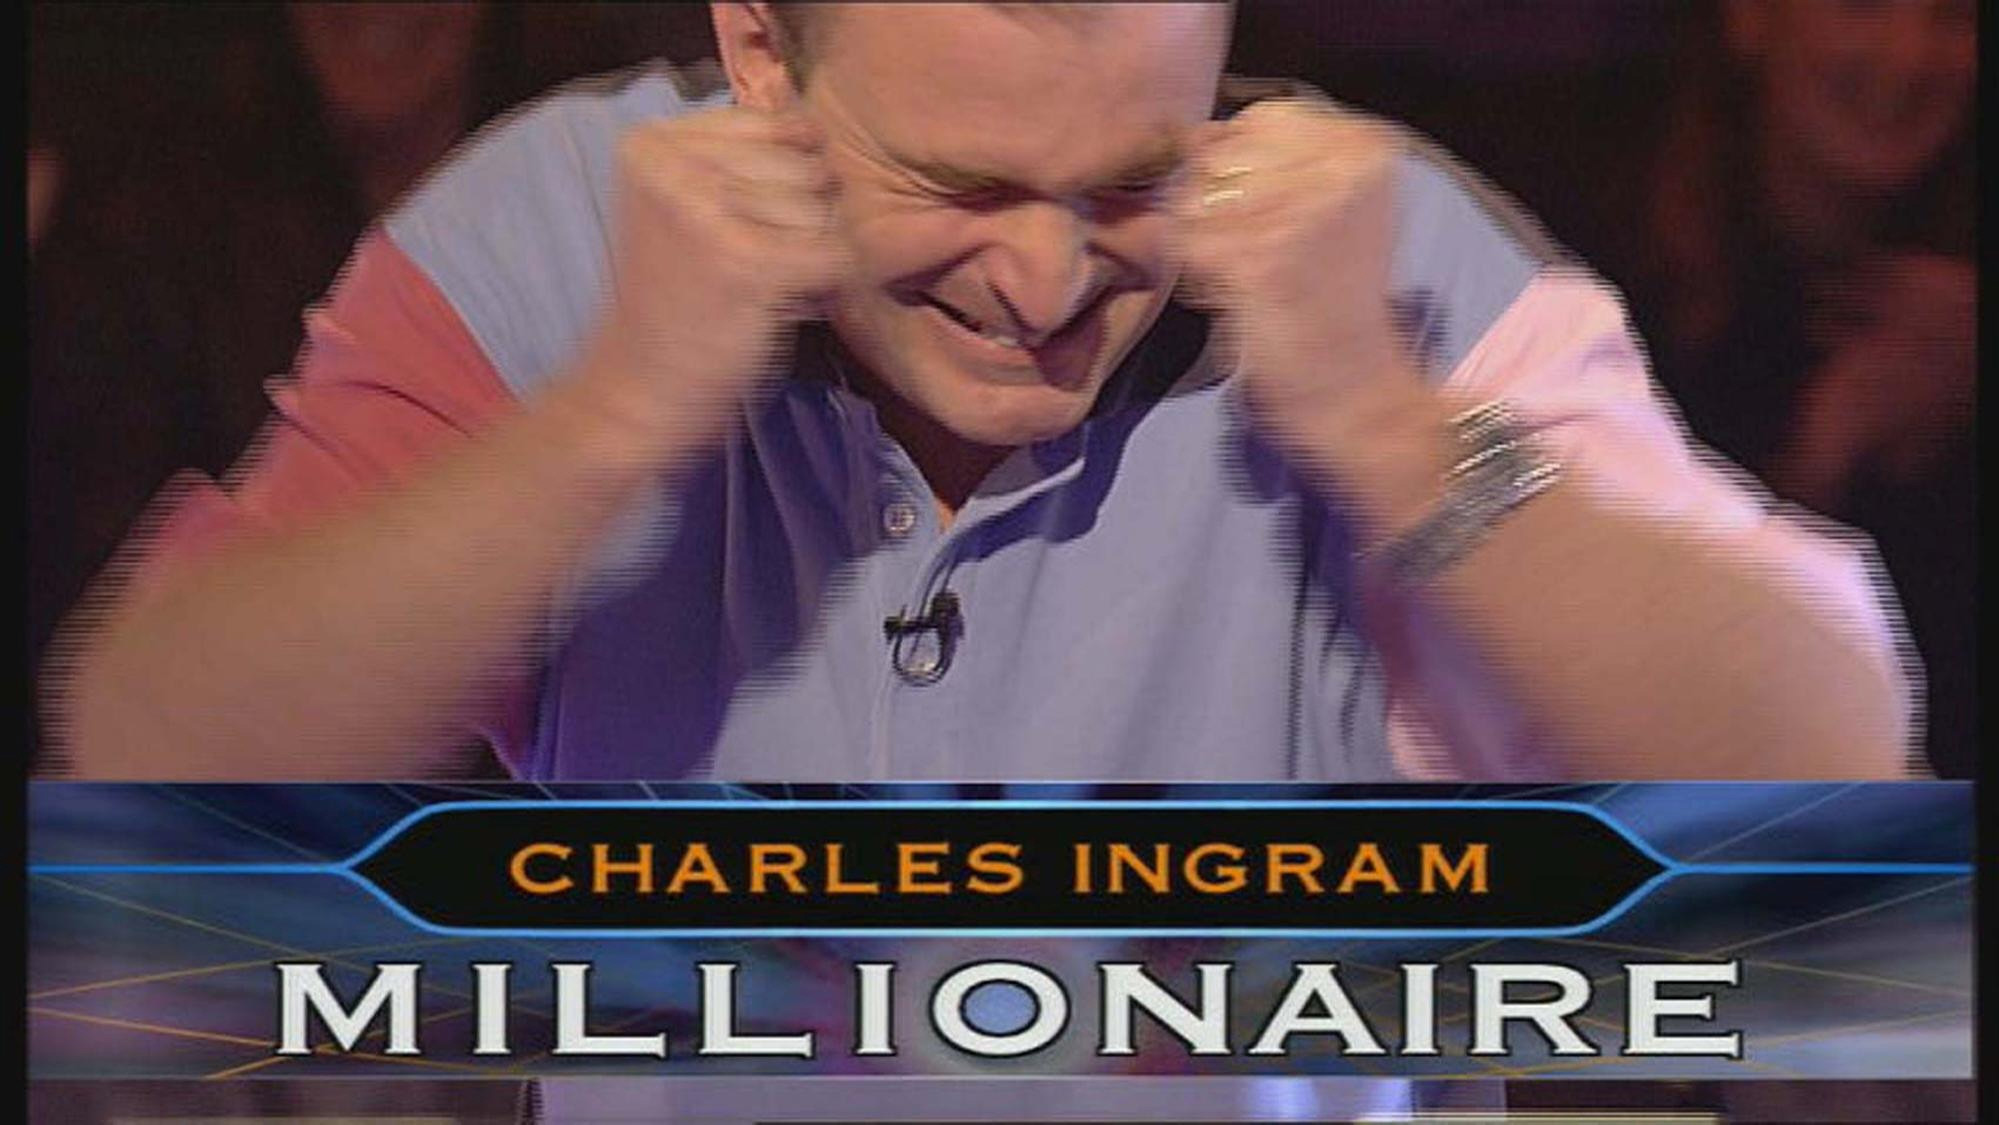 Major Charles Ingram during his controversial Who Wants To Be A Millionaire appearance.